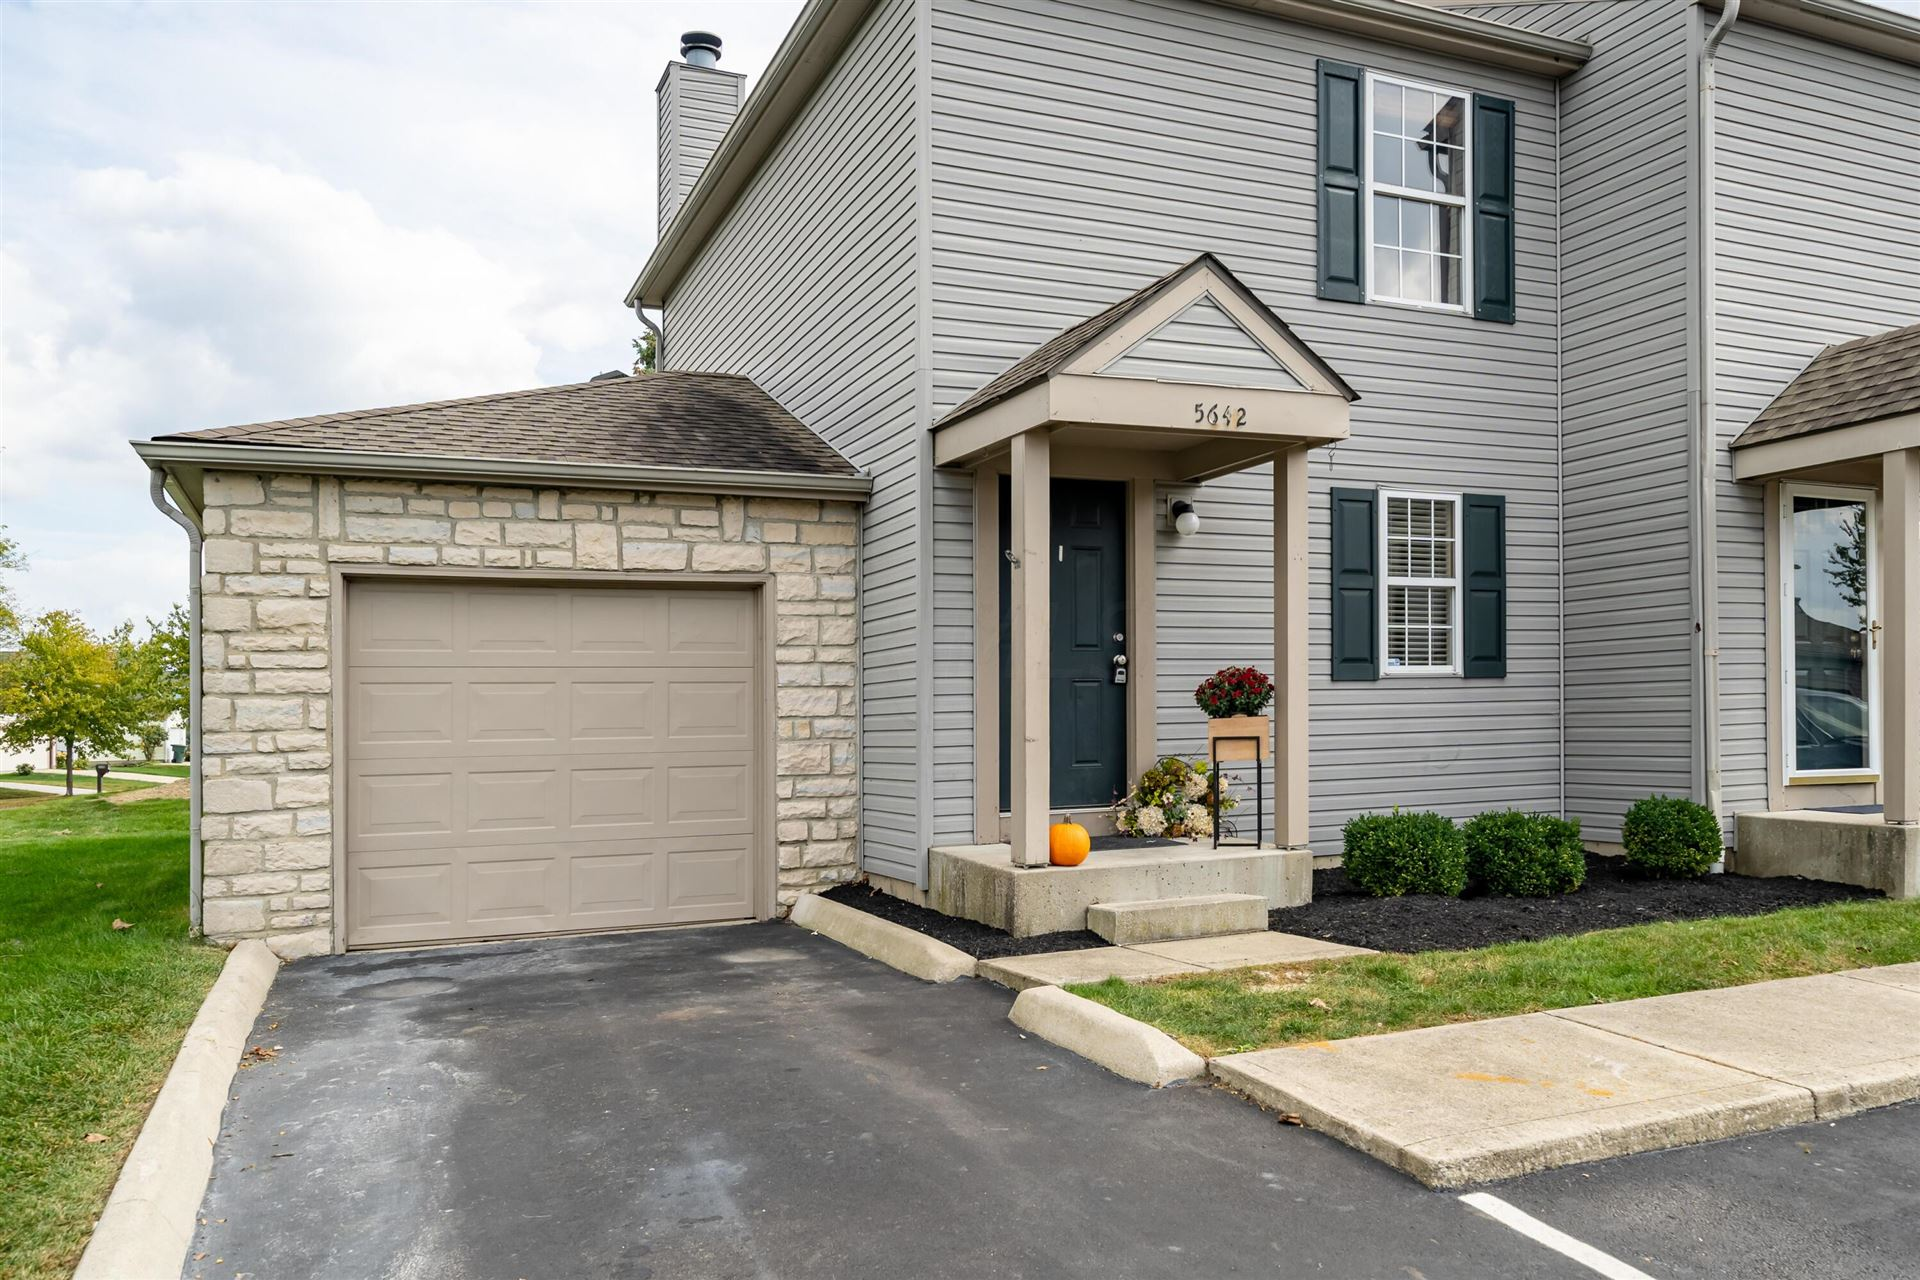 Photo of 5642 Wigmore Drive #52A, Columbus, OH 43235 (MLS # 221040995)